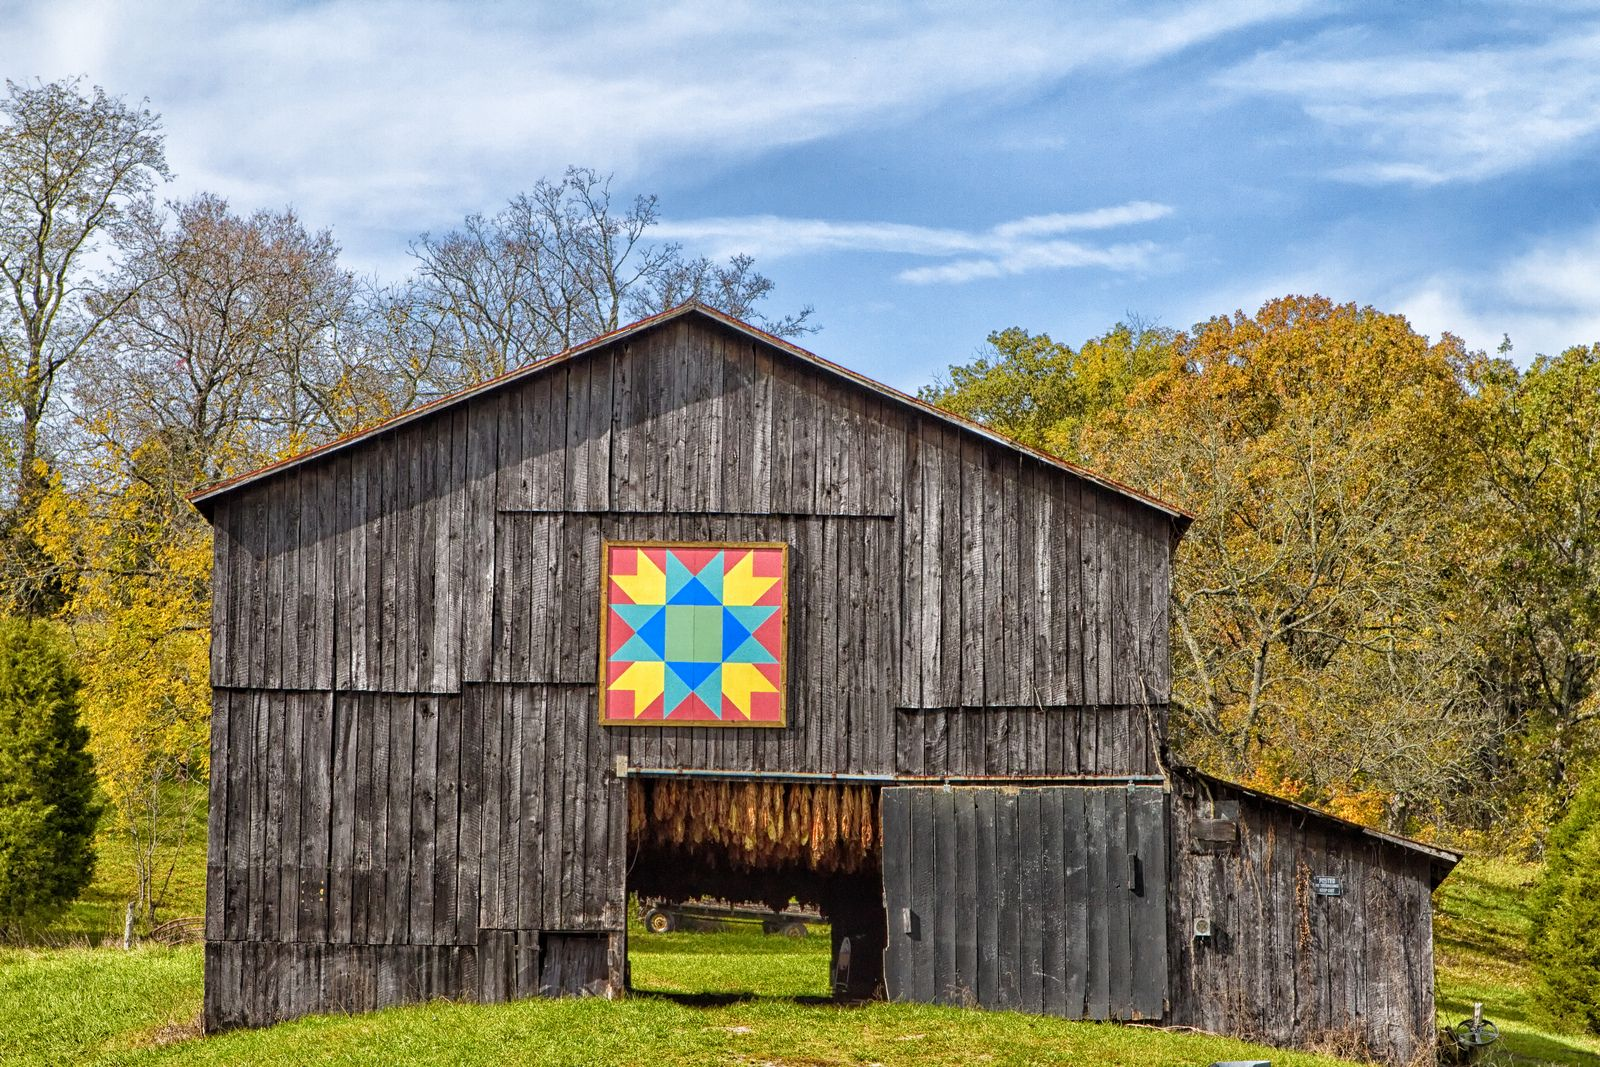 Amish barn with hex symbol symbols amish barn with hex symbol by timberwolfie biocorpaavc Images